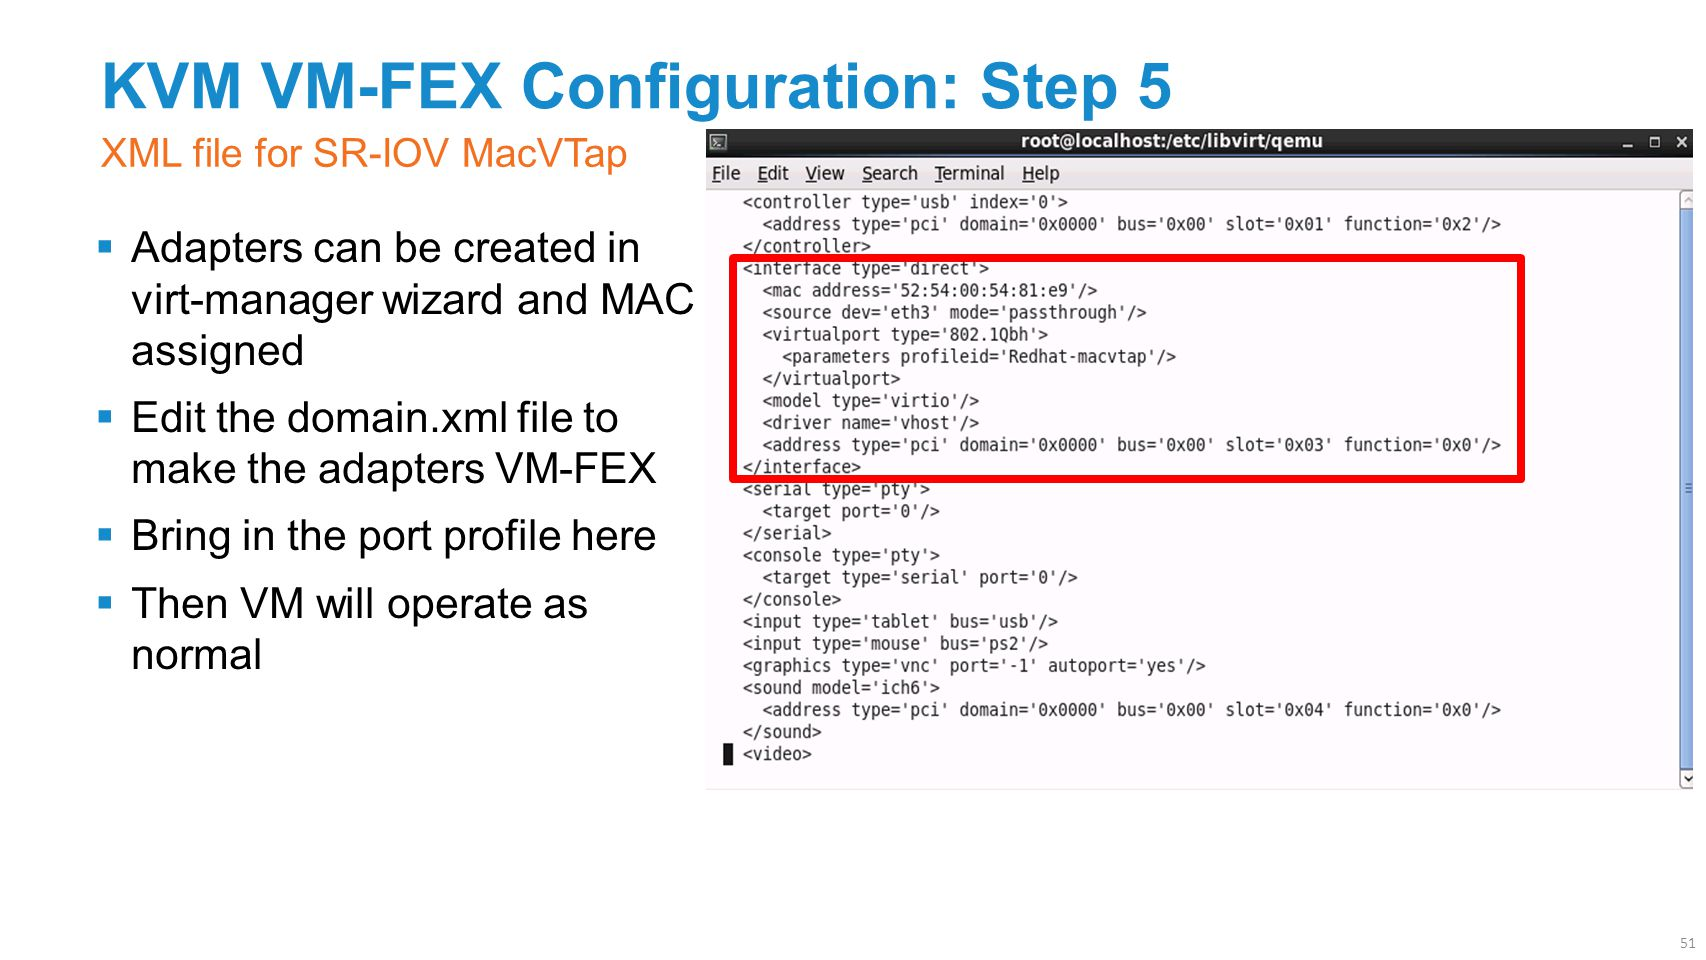 KVM VM-FEX Configuration: Step 5  Adapters can be created in virt-manager wizard and MAC assigned  Edit the domain.xml file to make the adapters VM-